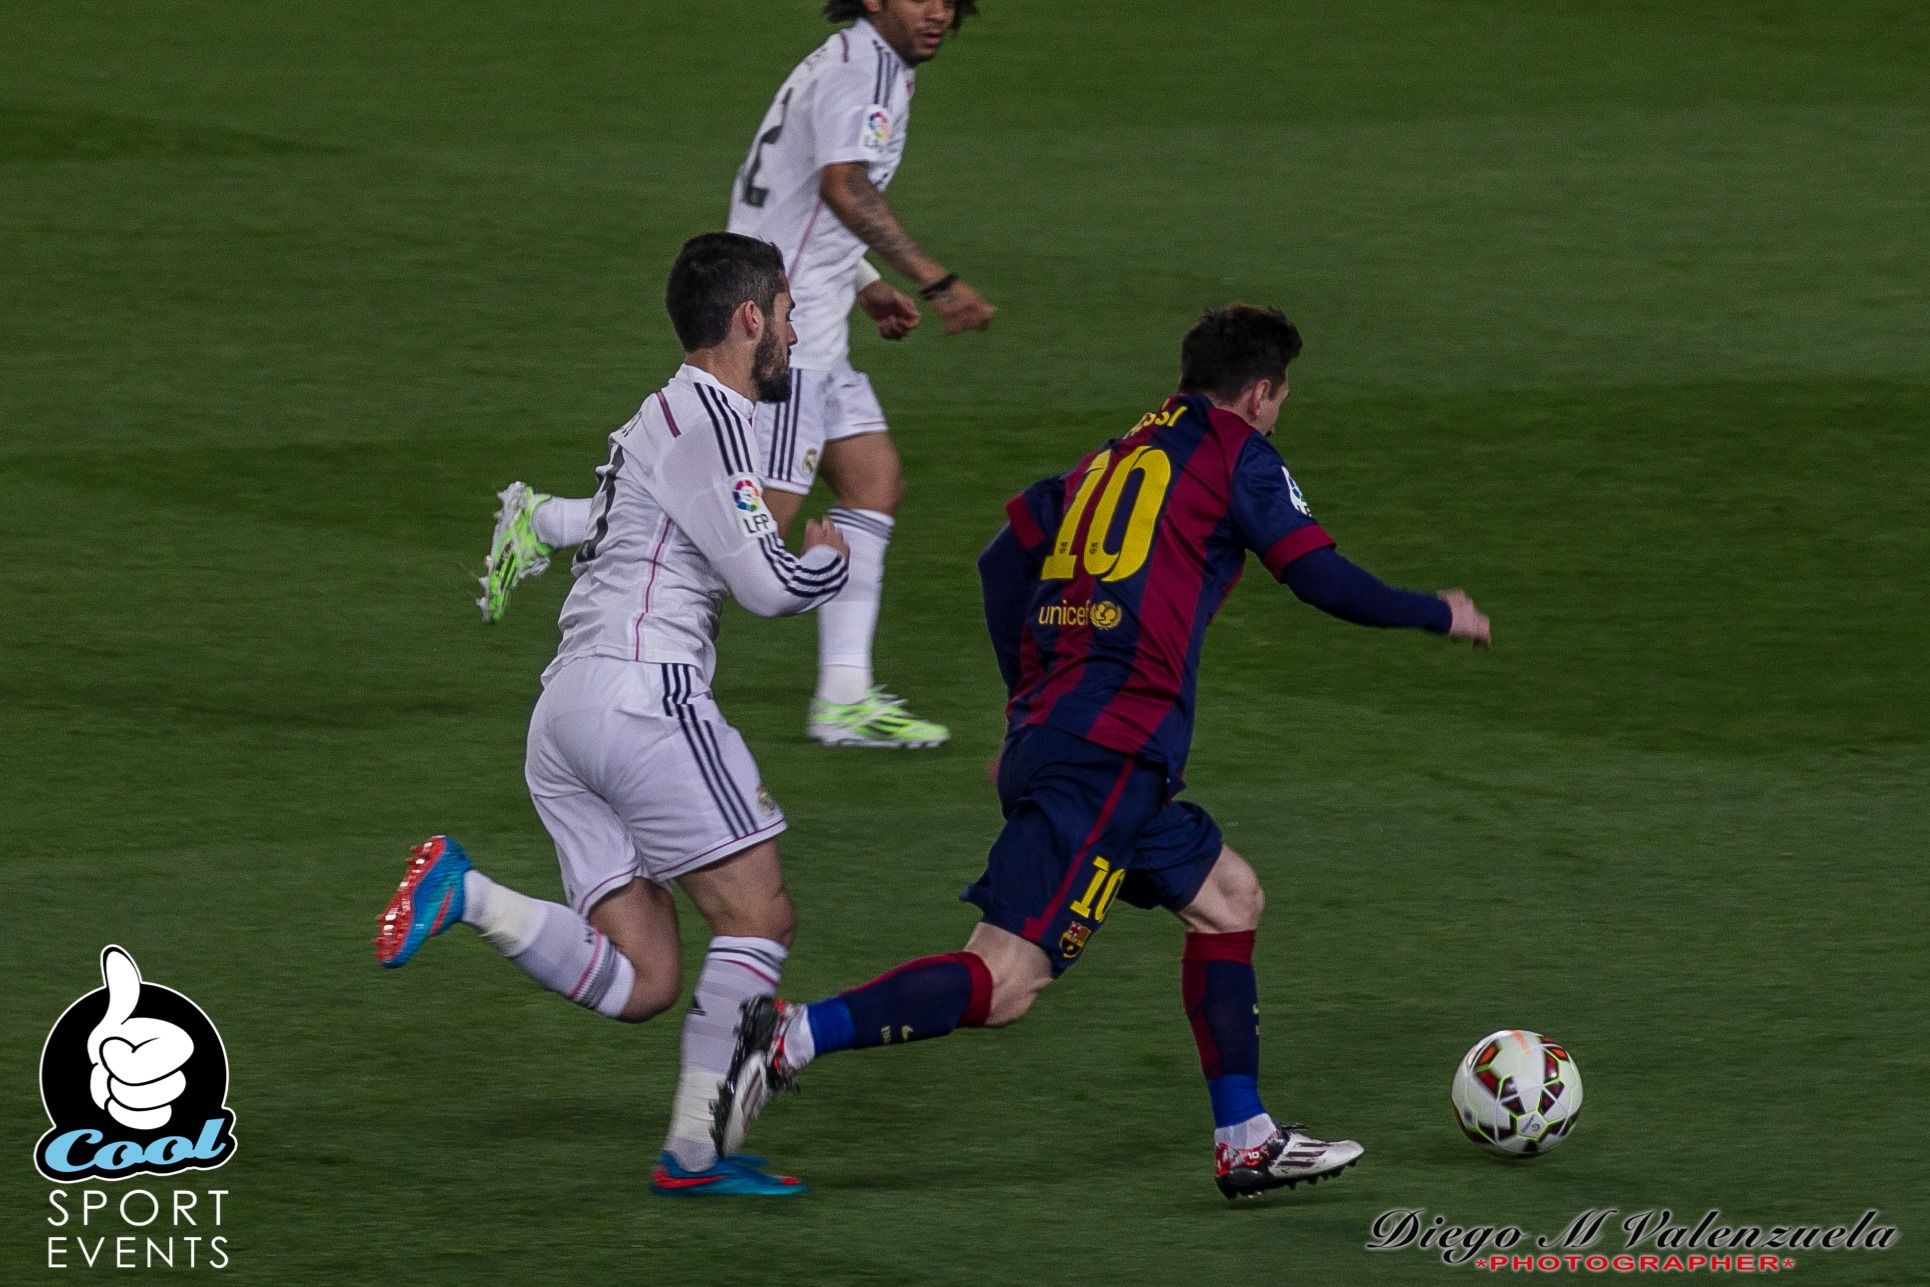 Partido Barça Real Madrid del 22 de Marzo de 2015 - Camp Nou, Barcelona.  FC Barcelona vs Real Madrid match. 22nd March 2015 - Camp nou Stadium, Barcelona